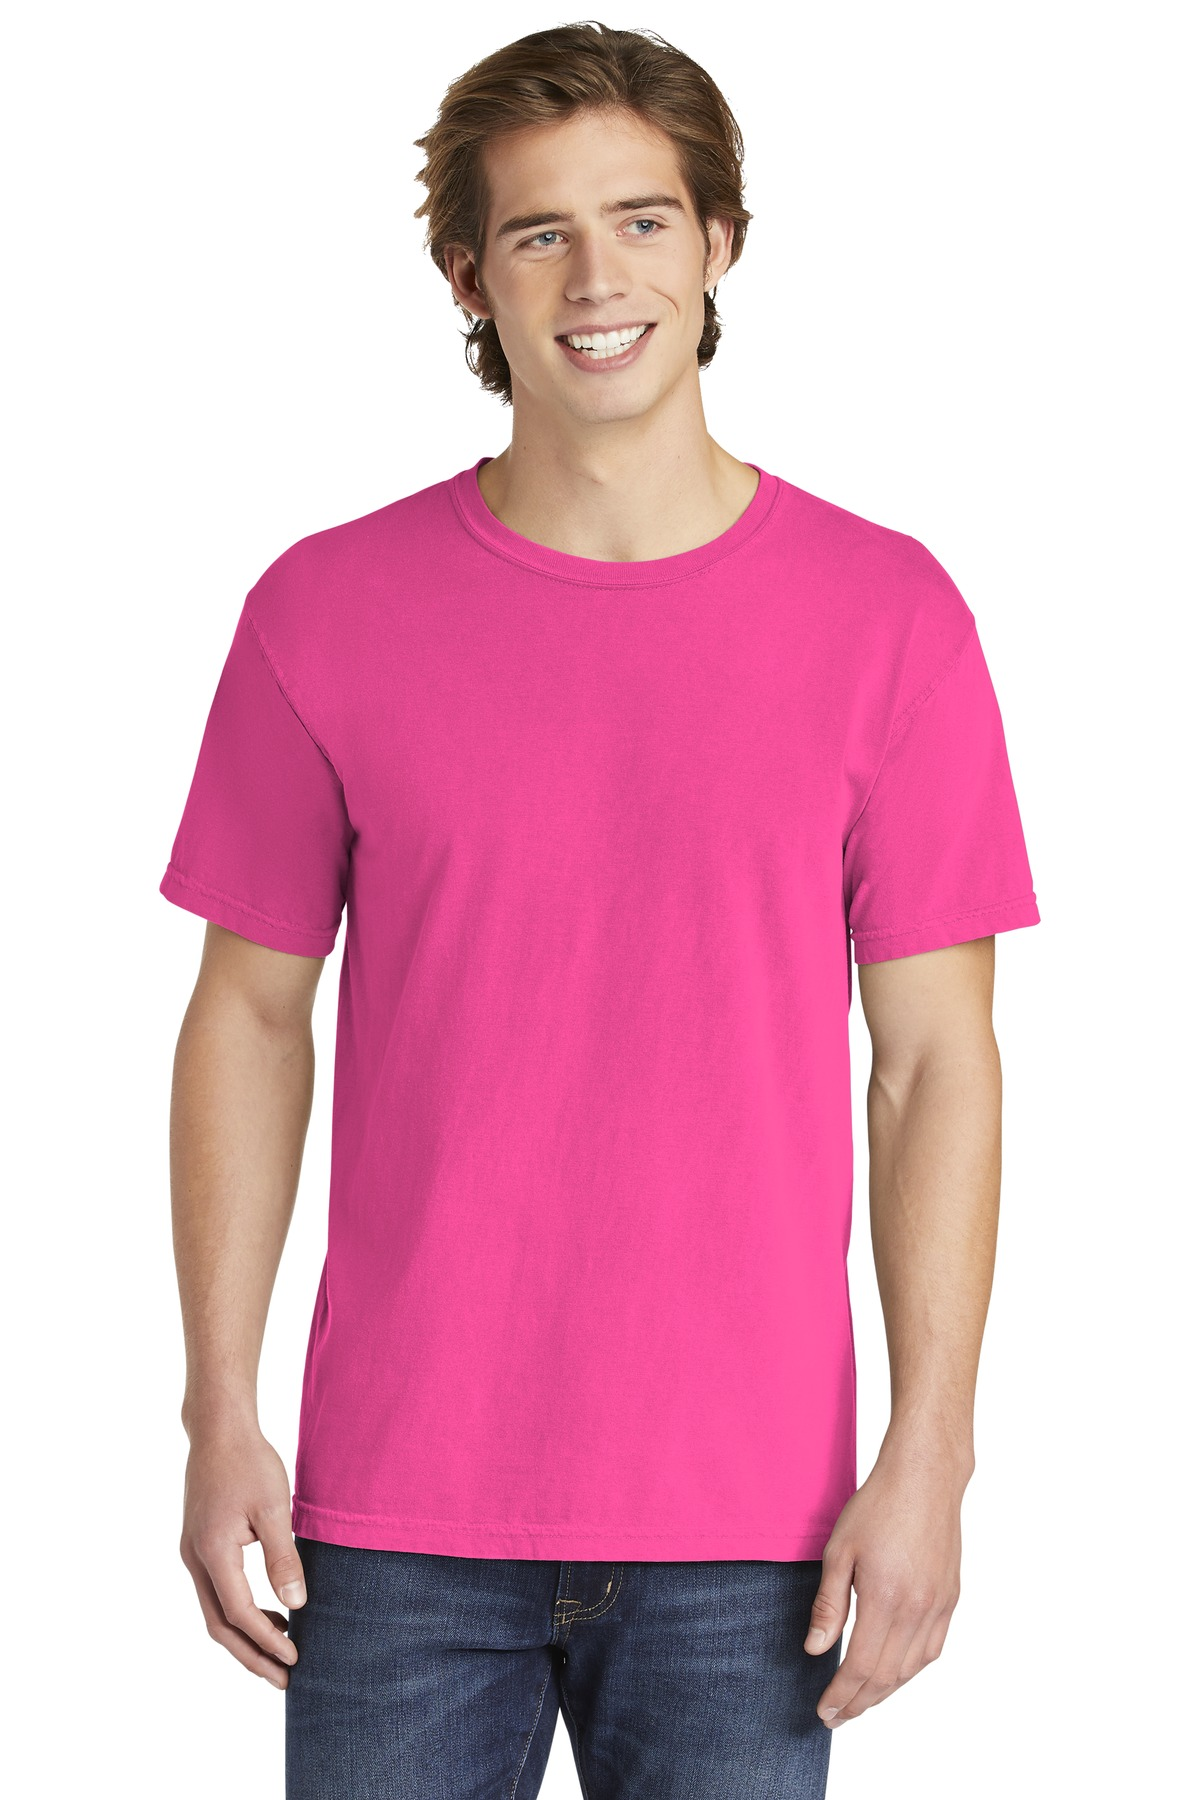 COMFORT COLORS  ®  Heavyweight Ring Spun Tee. 1717 - Neon Pink